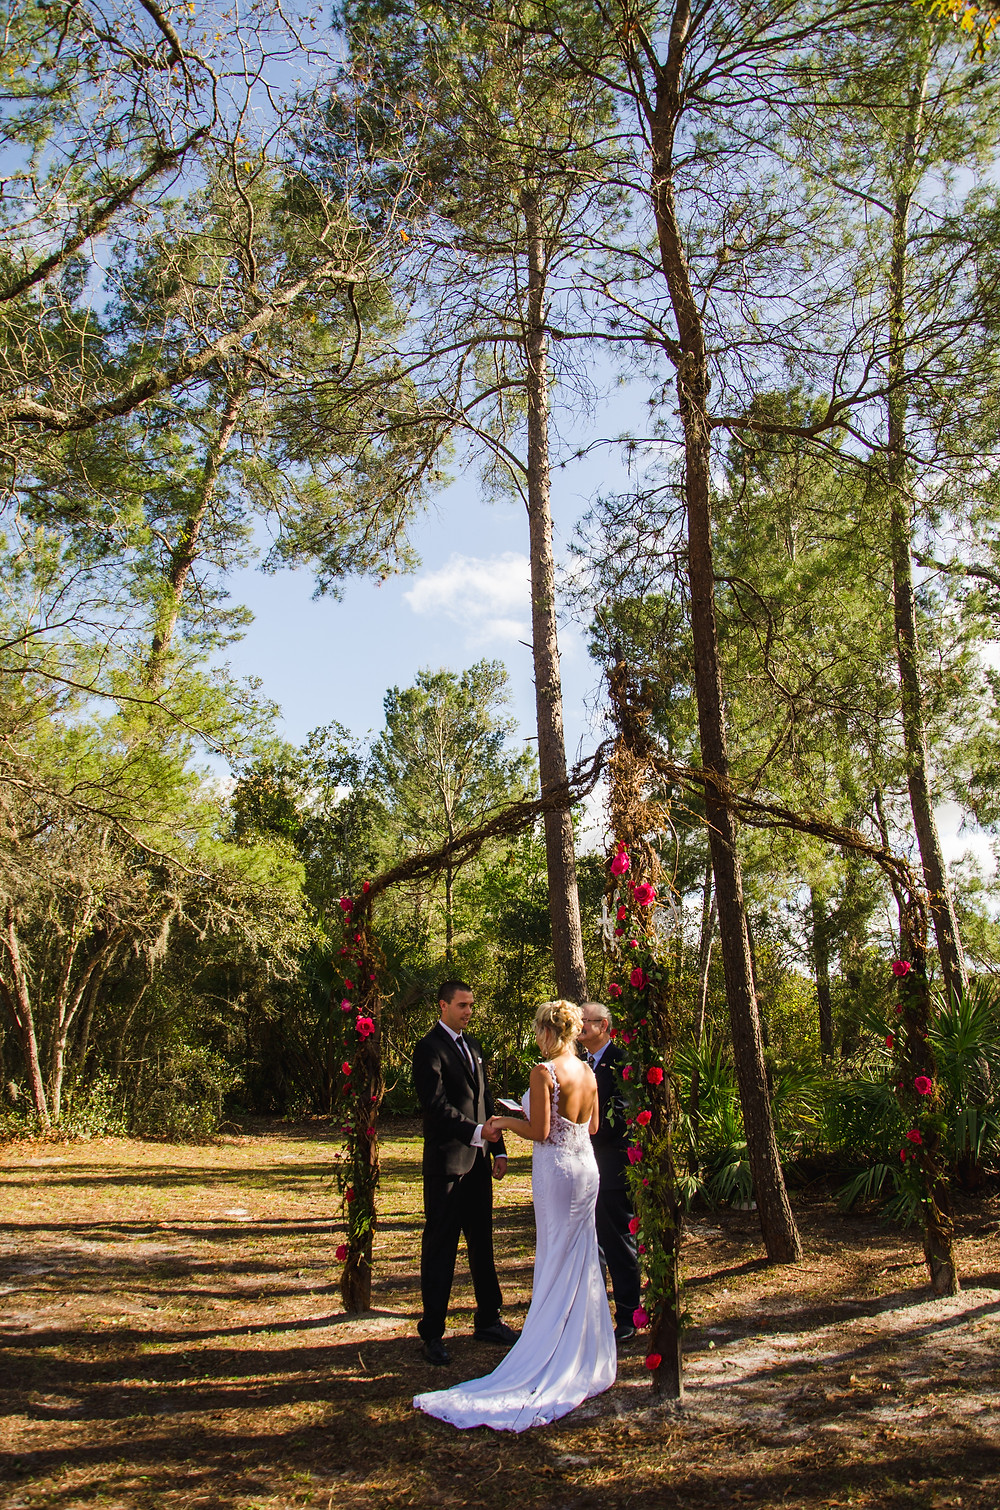 Winter Springs wedding ceremony